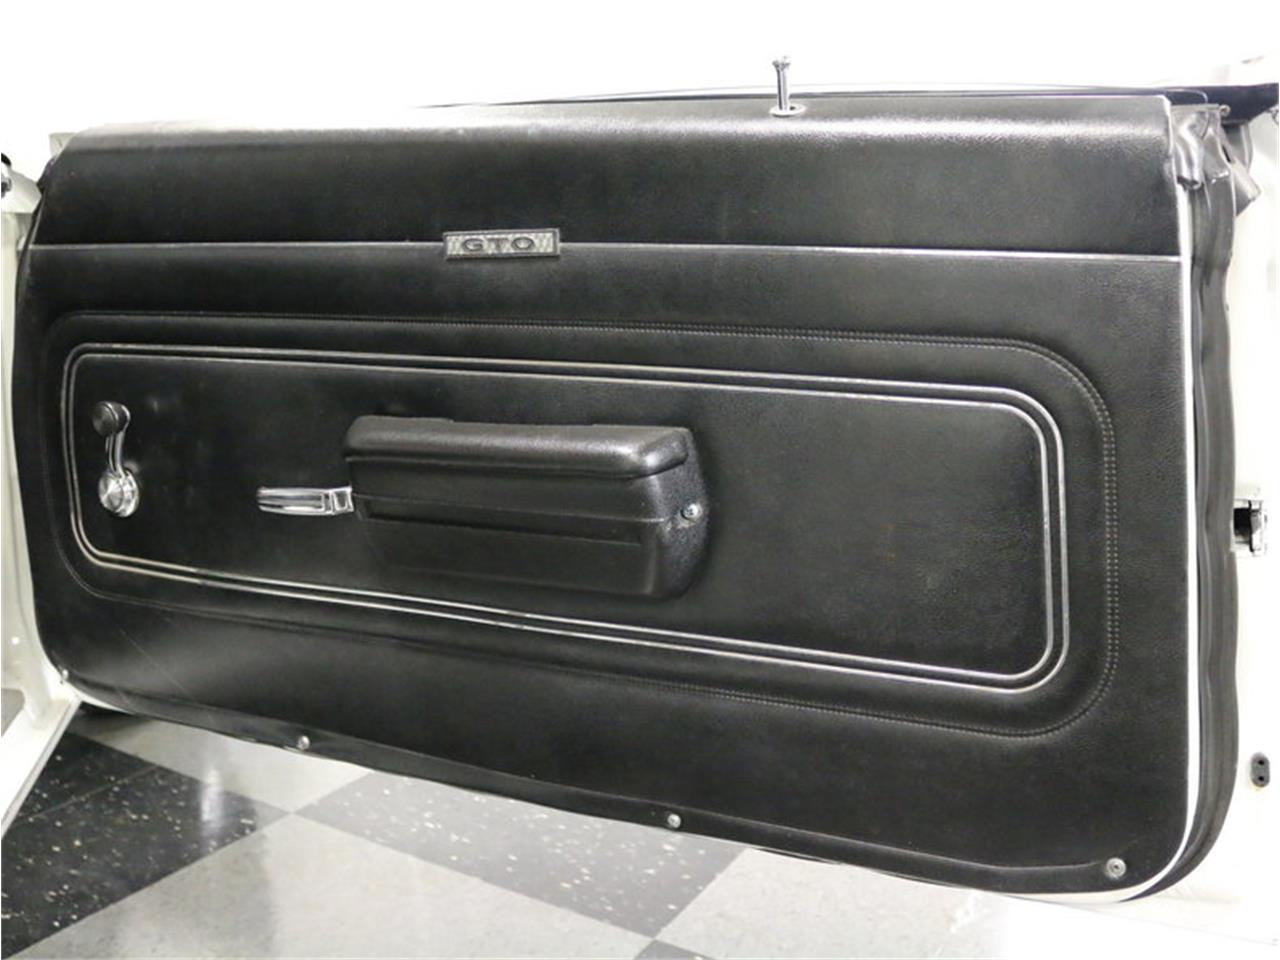 Large Picture of Classic 1971 Pontiac GTO located in Texas Offered by Streetside Classics - Dallas / Fort Worth - MOBK